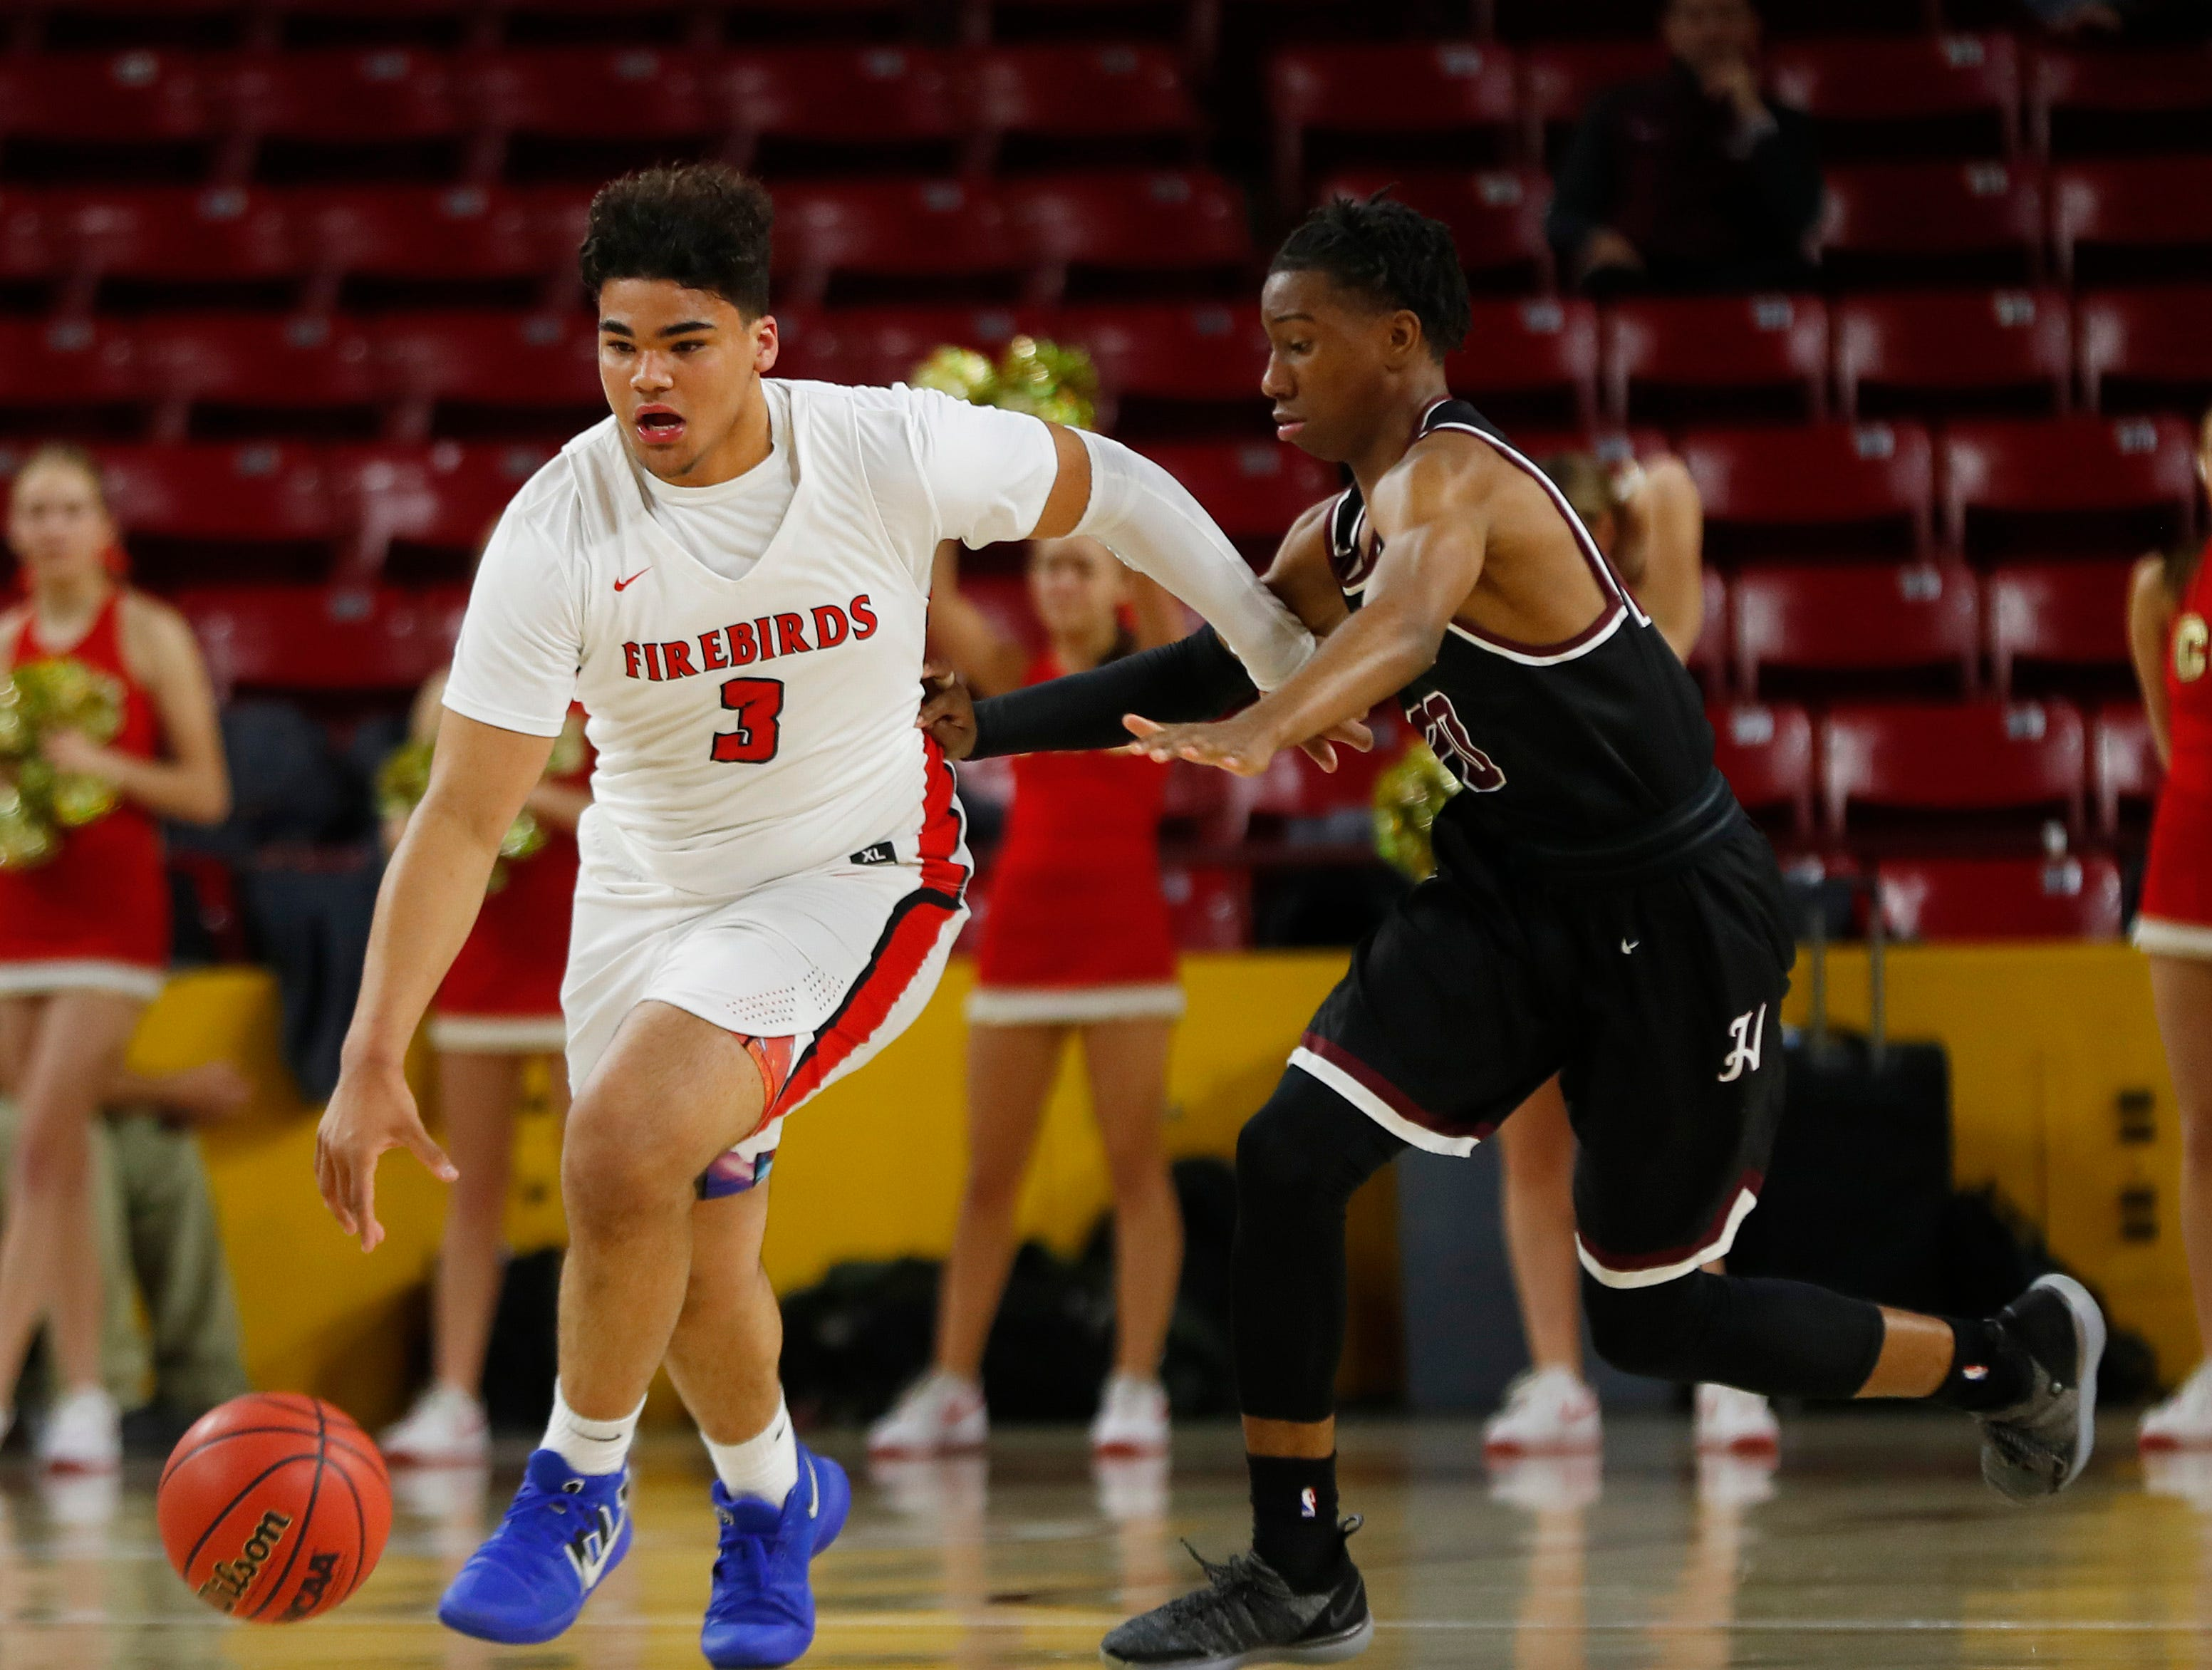 Chaparral's Blaise Threatt (3) dribbles up the court against Hamilton's Omar Knight (24) during first half of the 6A boys basketball semifinal game at Wells Fargo Arena in Tempe, Ariz. on February 21, 2019.